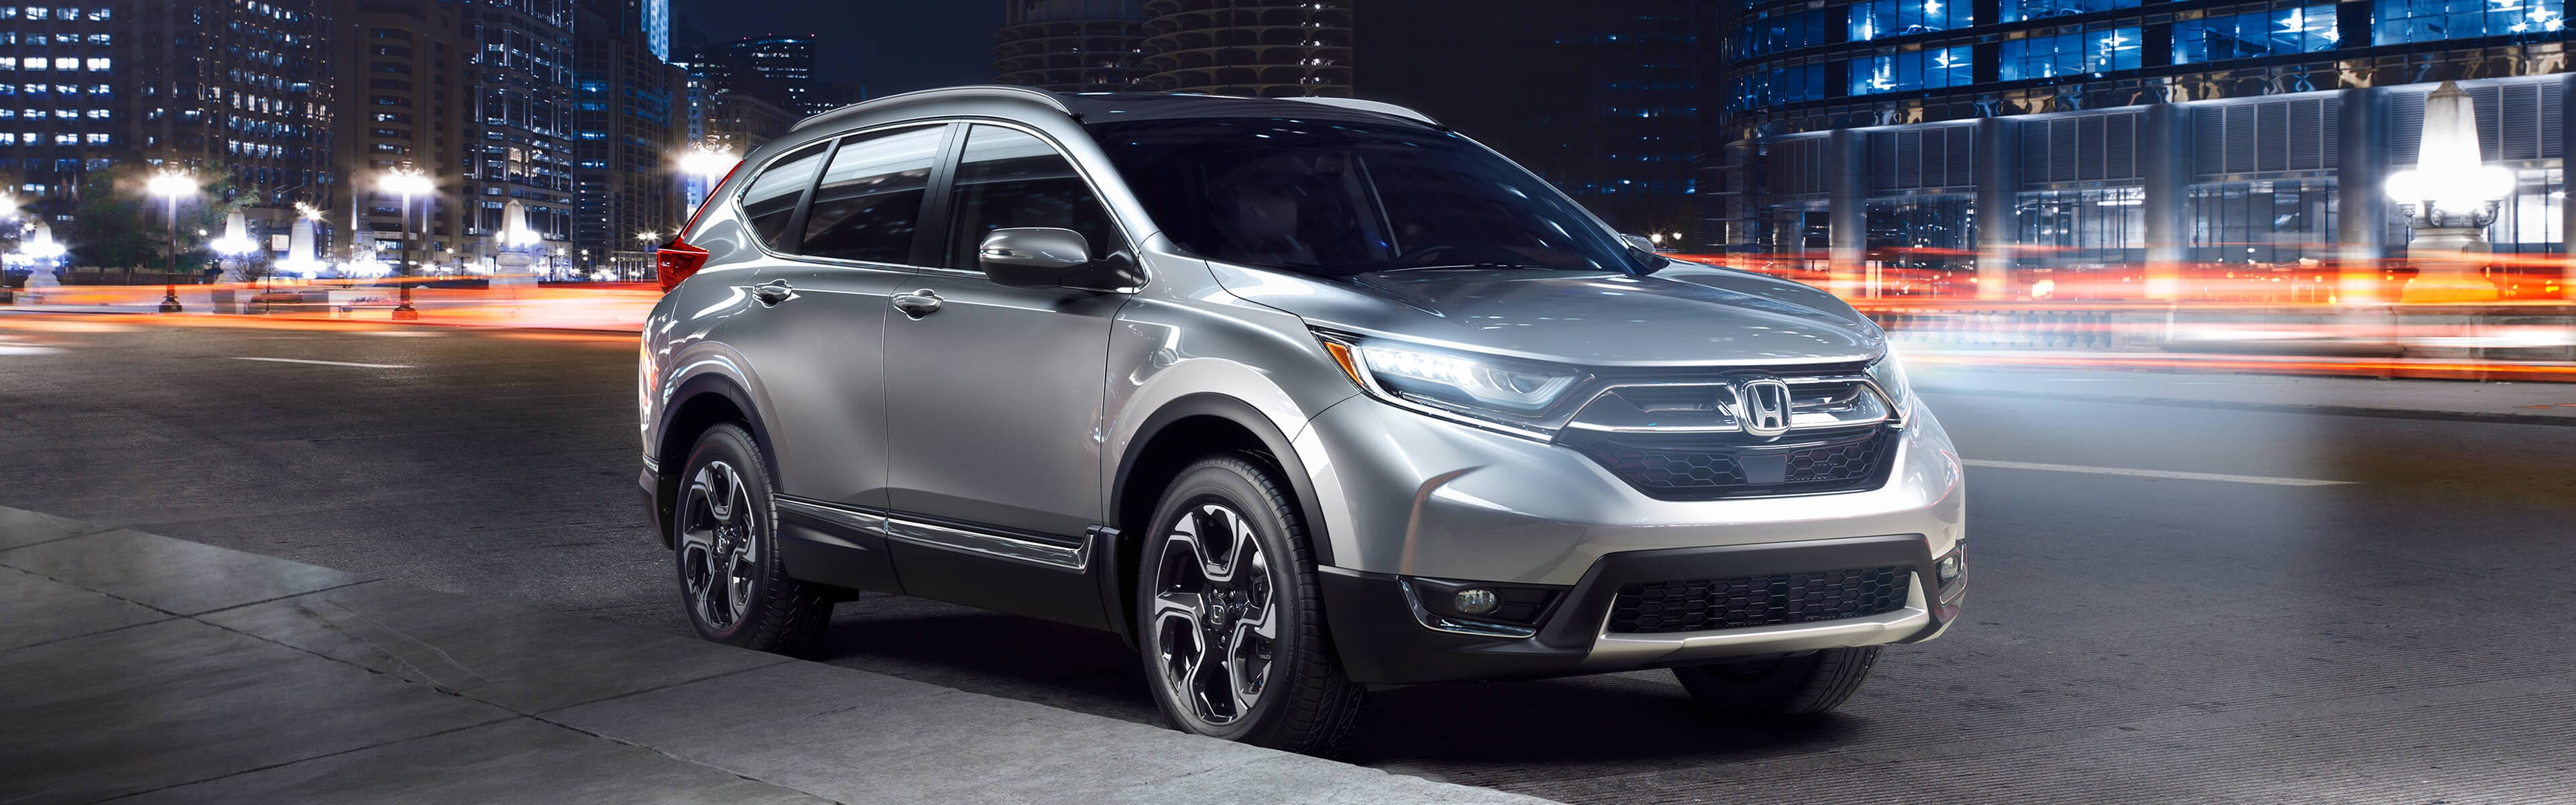 Image Of 2018 CR V On City Street